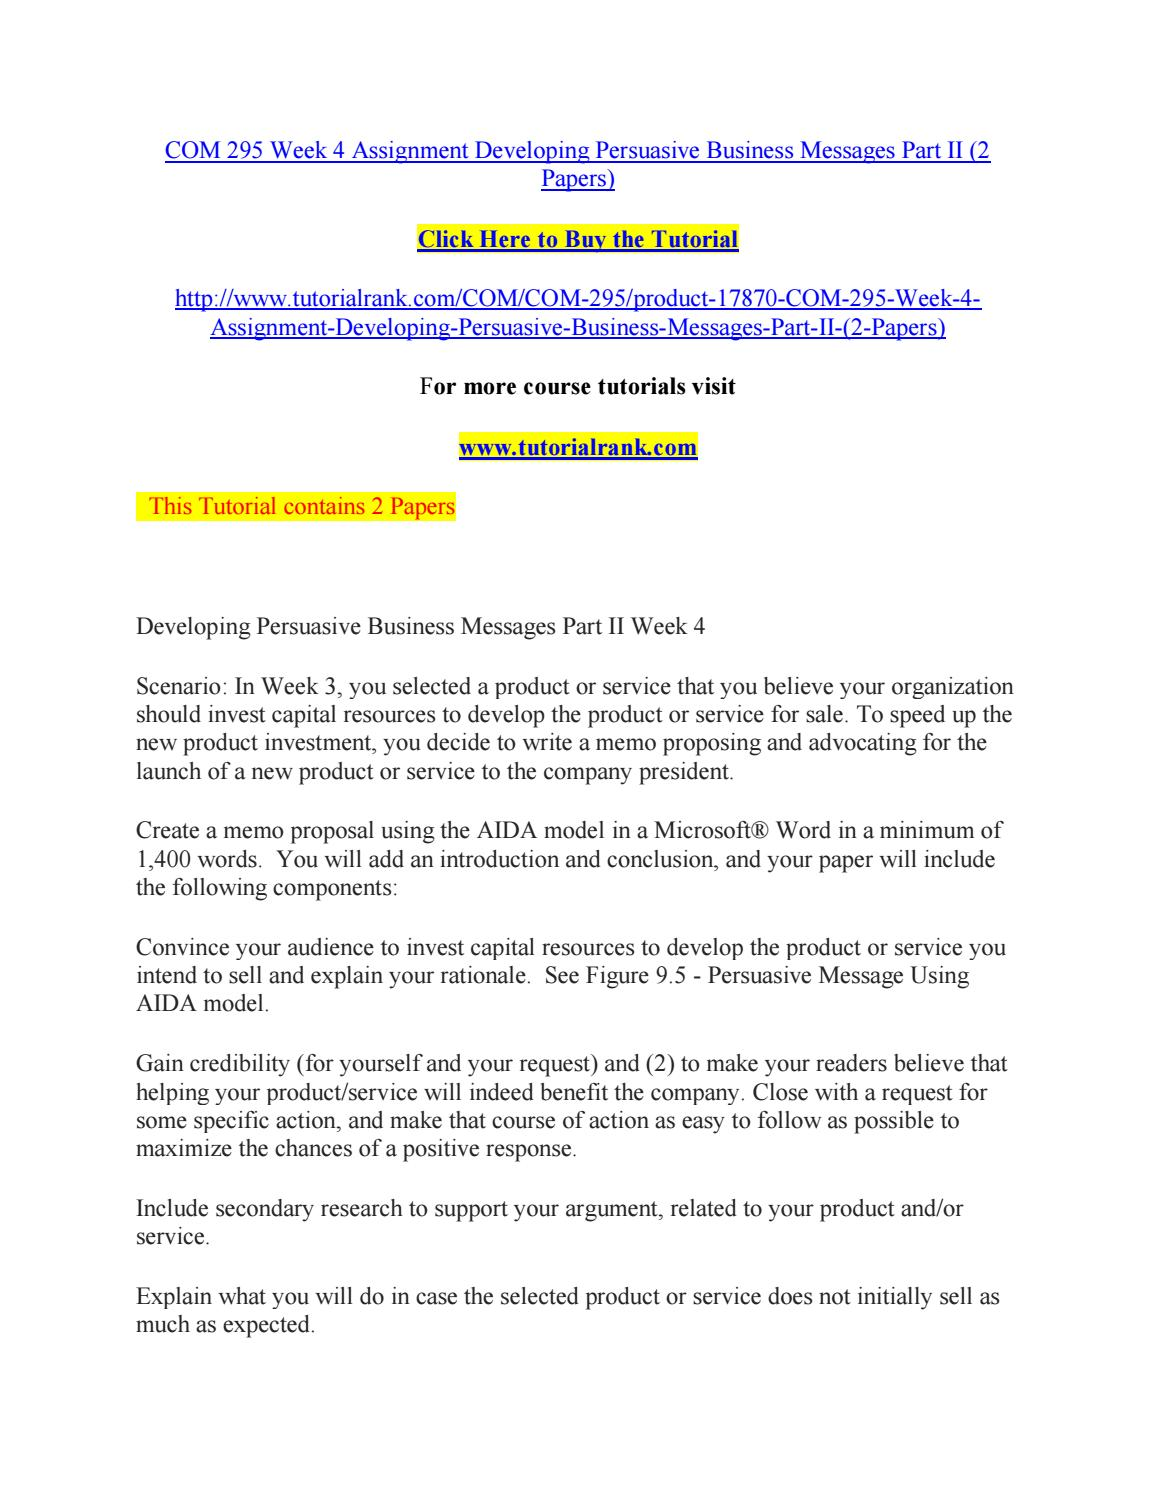 021 Page 1 Research Paper Easy Topics About Surprising Business Full